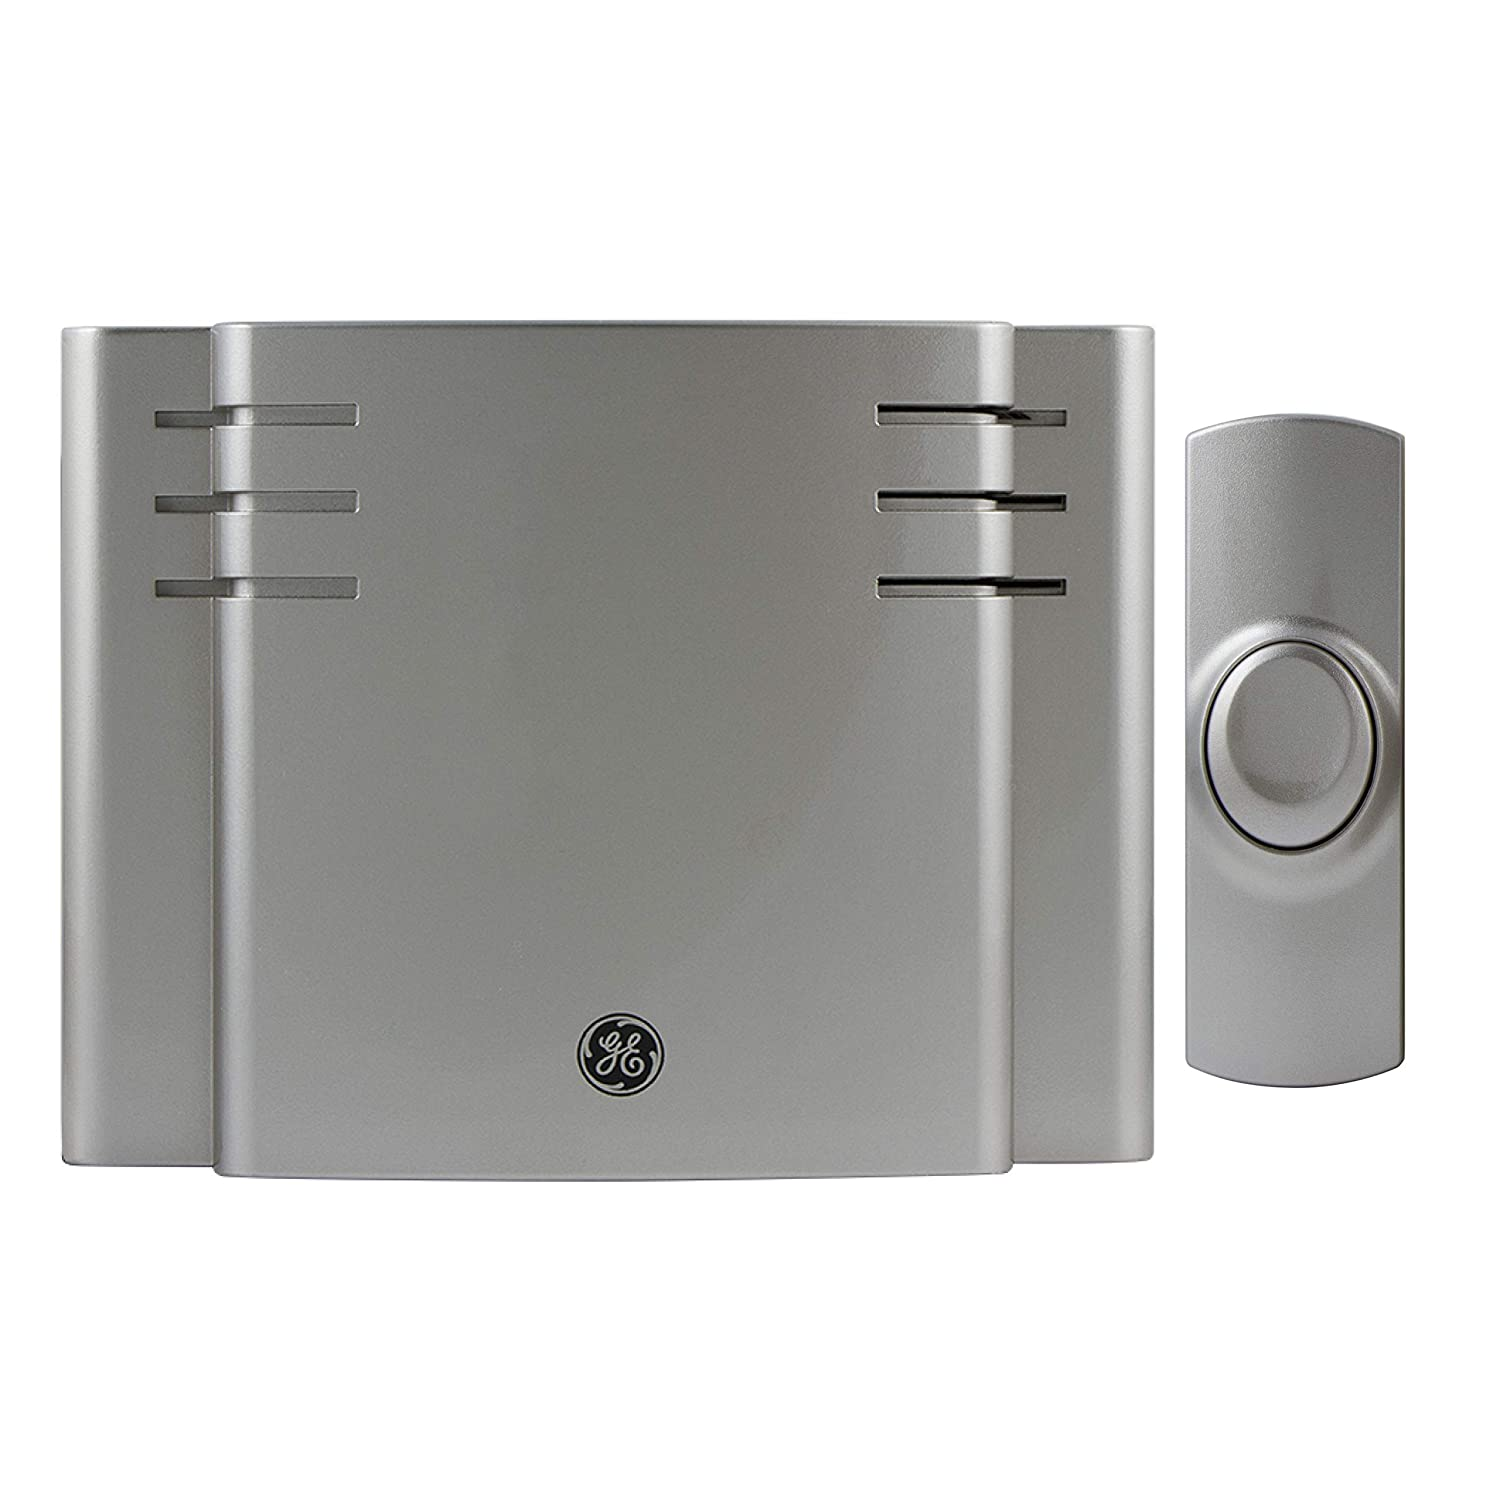 GE 19303 RA26567 Battery-Operated Wireless Door Chime, 8 Melodies, Satin Nickel